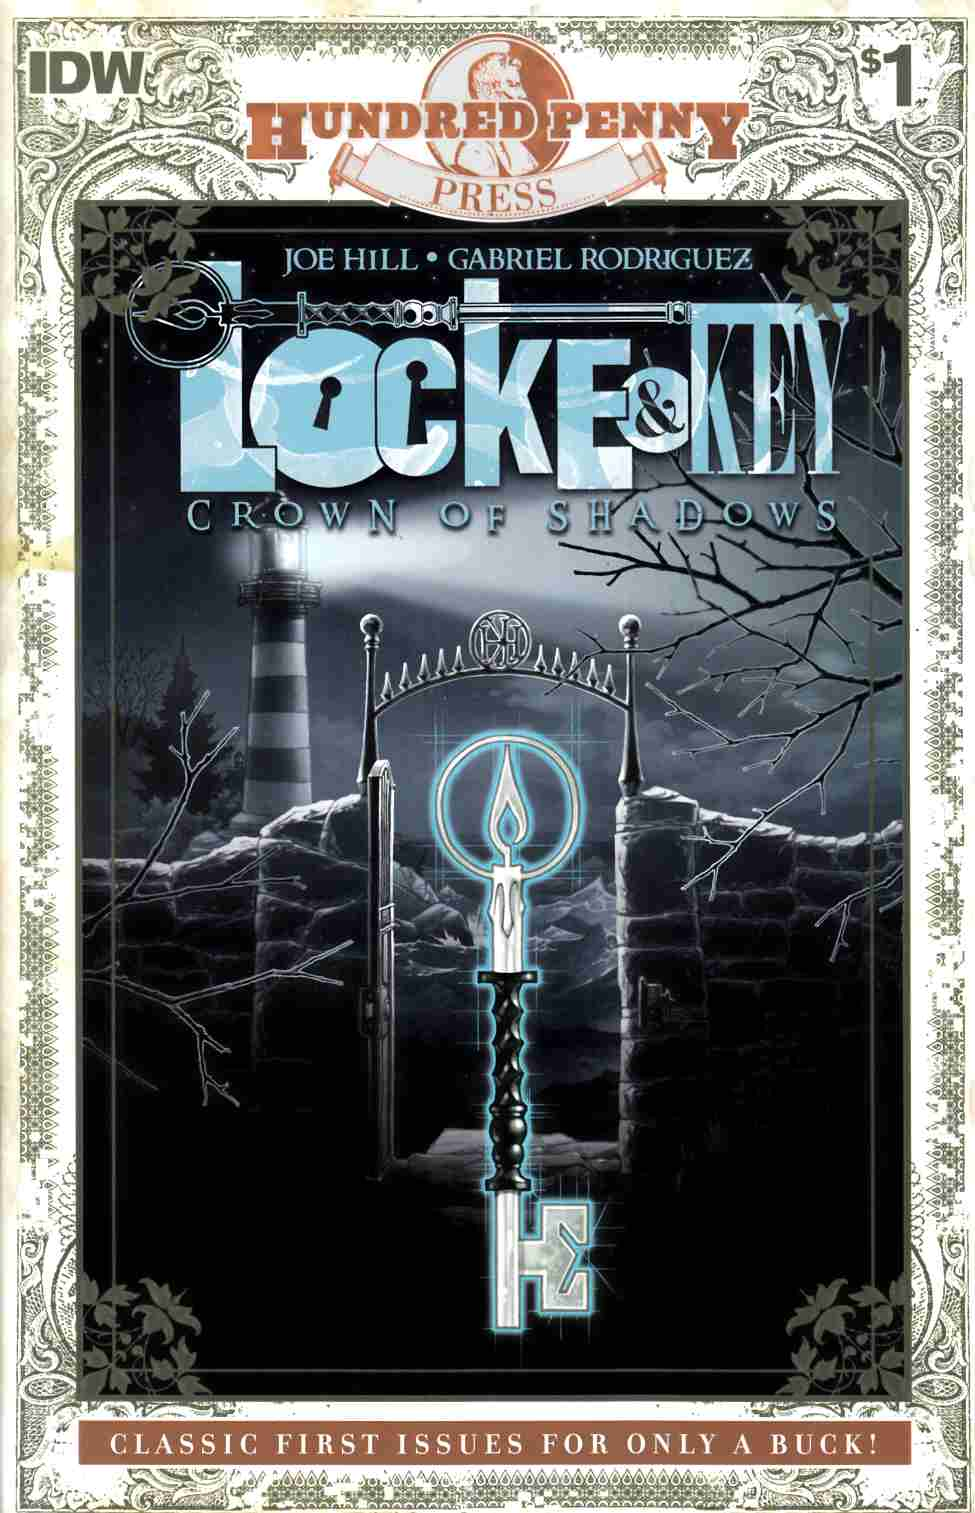 Locke & Key Crown of Shadows #1 100 Penny Press Edition [IDW Comic]_THUMBNAIL